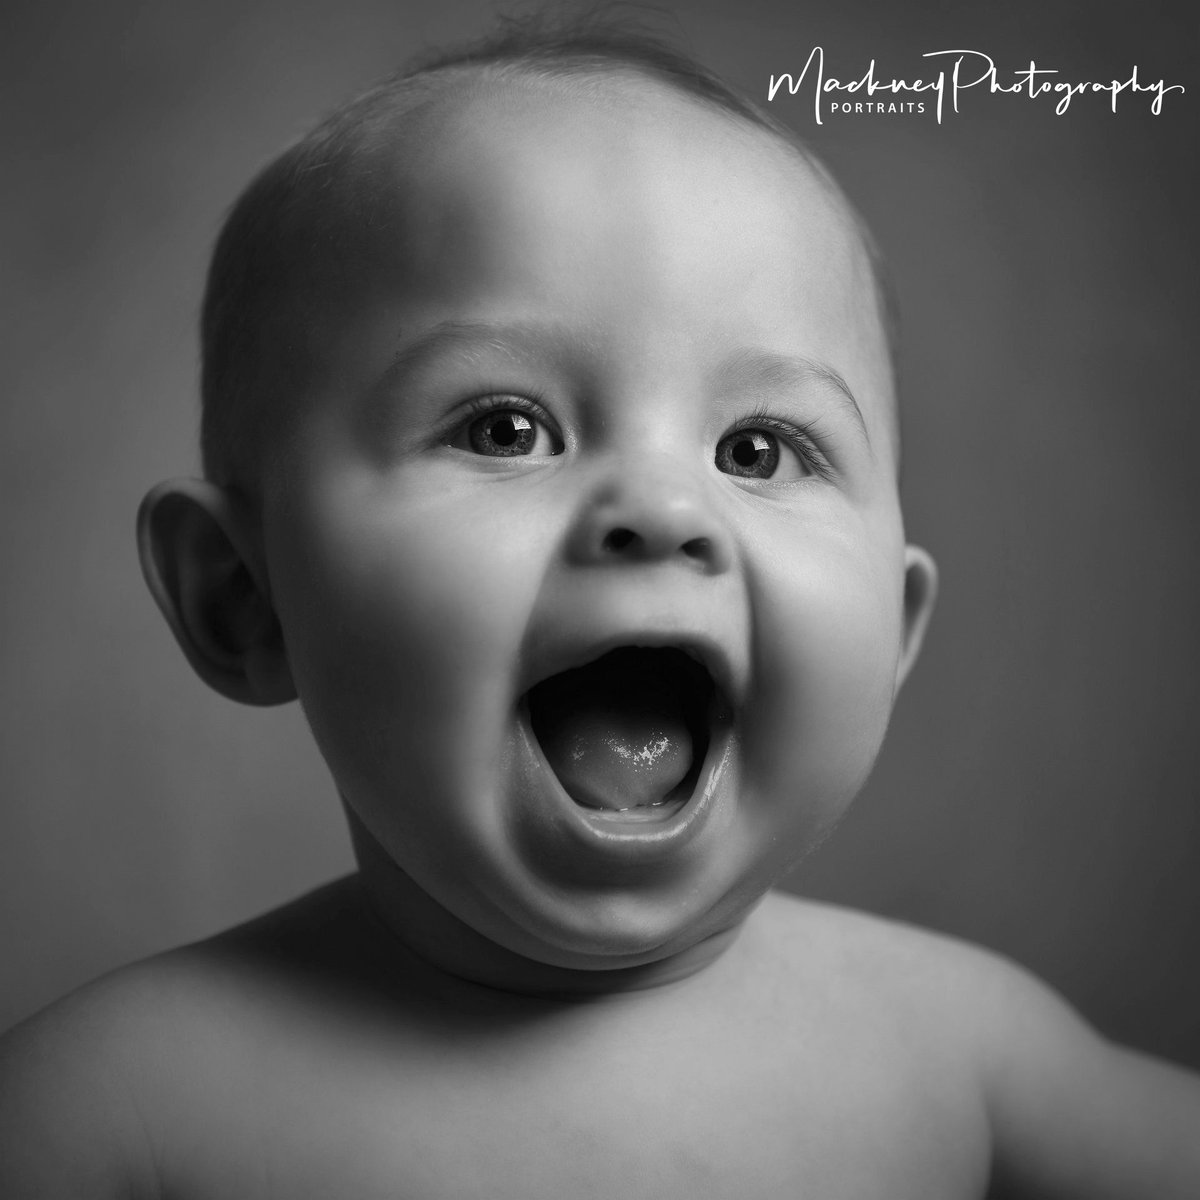 Alfie's got that Friday feeling!  How are you spending the weekend? Let us know if you're coming for a shoot, we can't wait to see you! #BabyPortrait #Studioportrait #Baby #family #love #portraits #photography #mackney #derbypic.twitter.com/VxvHl0rwCG